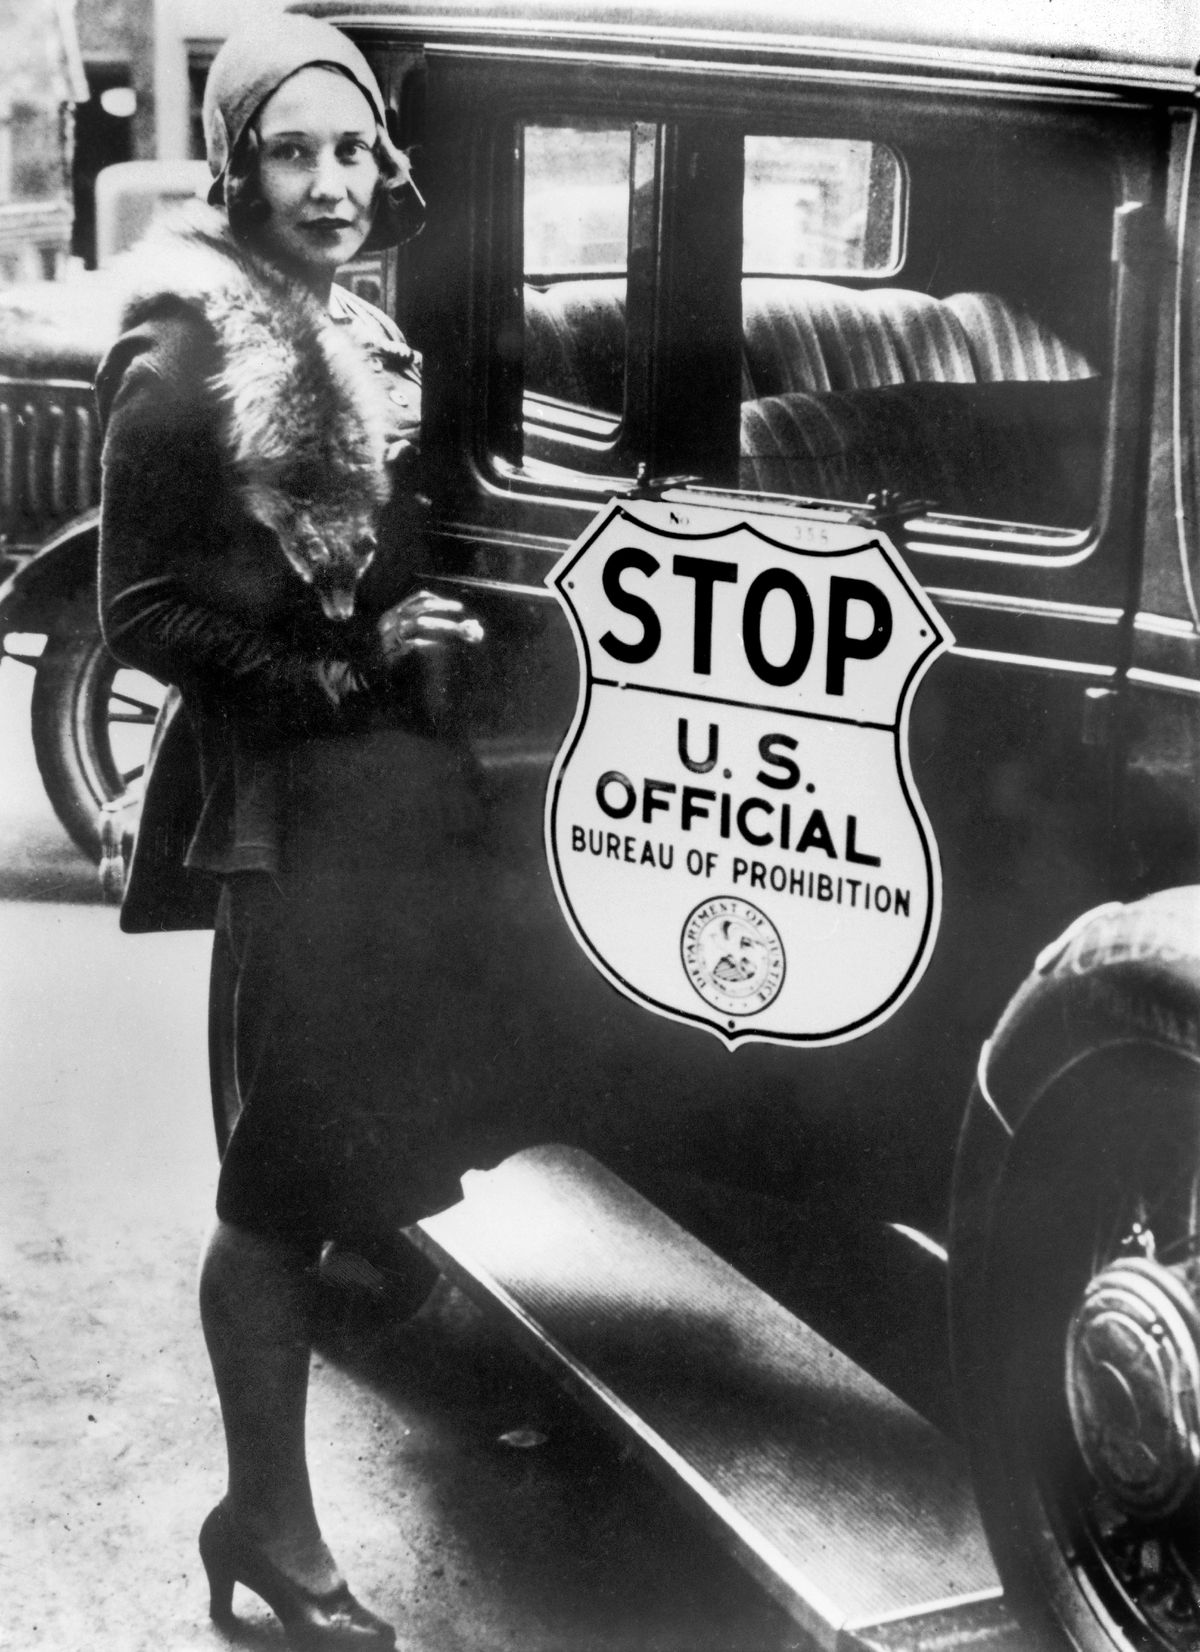 A woman gets into a US Bureau of Prohibition car in 1930.